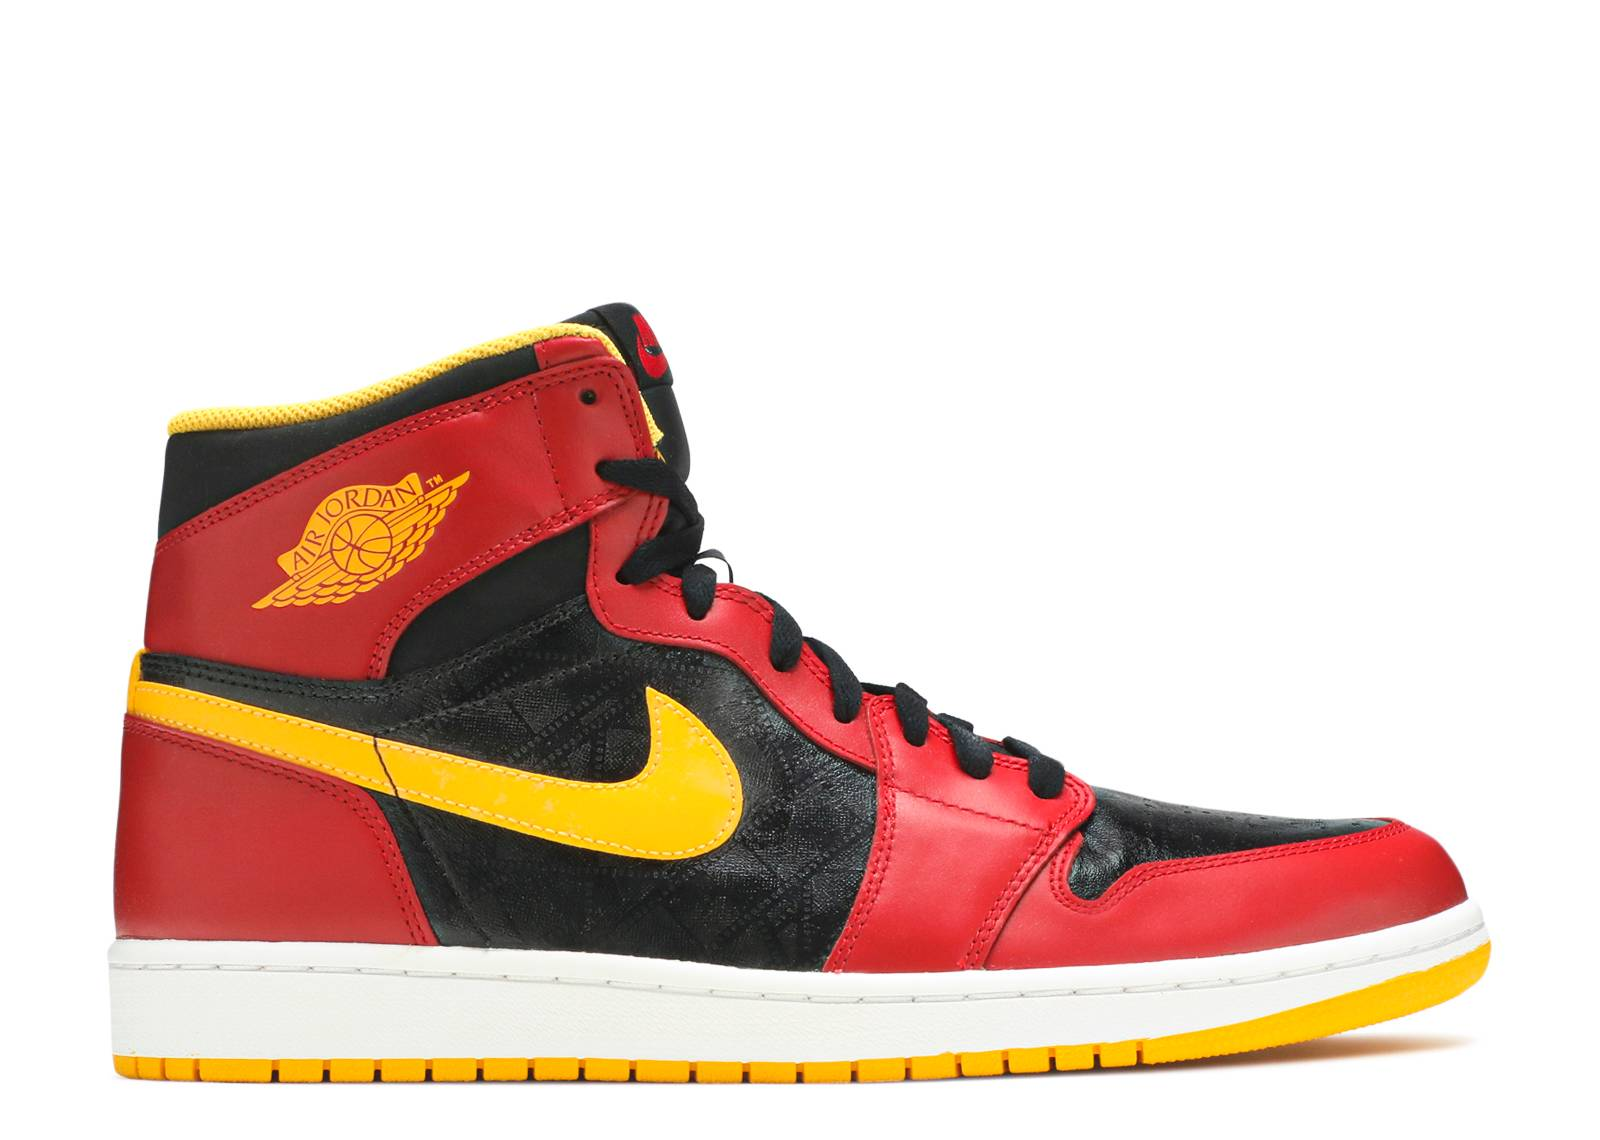 nike air jordan 1 retro high og highlight reel meaning